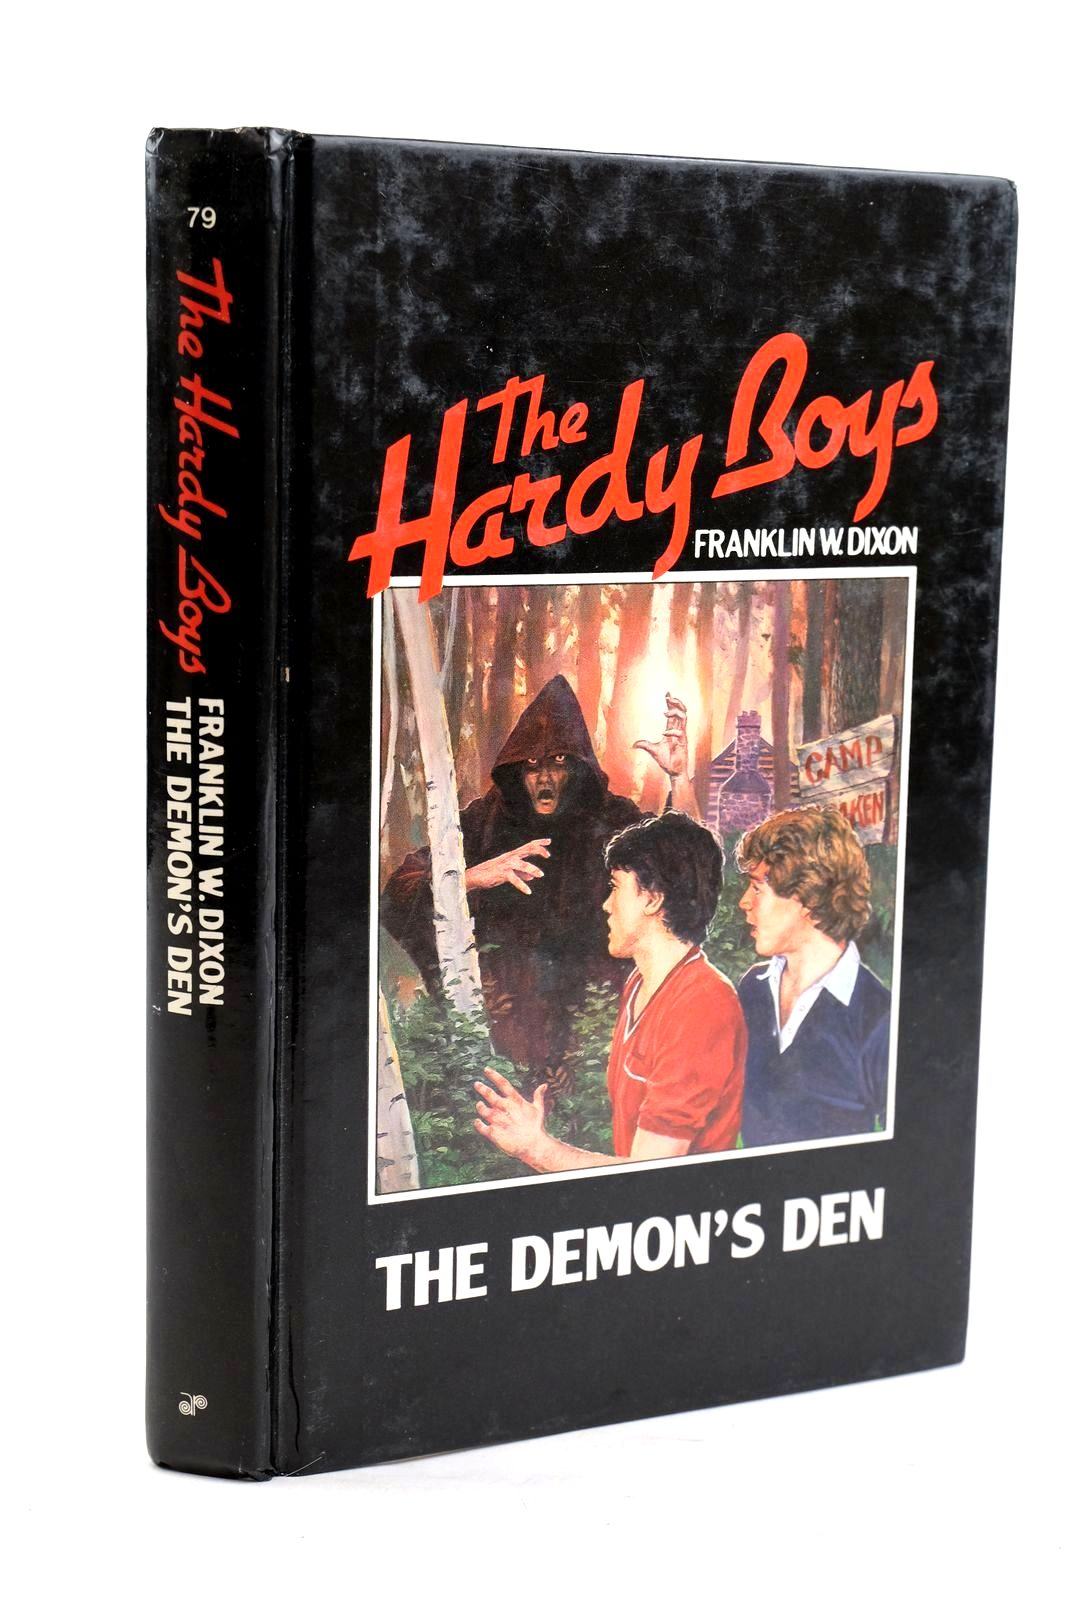 Photo of THE DEMON'S DEN written by Dixon, Franklin W. illustrated by Frame, Paul published by Angus & Robertson Publishers (STOCK CODE: 1319541)  for sale by Stella & Rose's Books